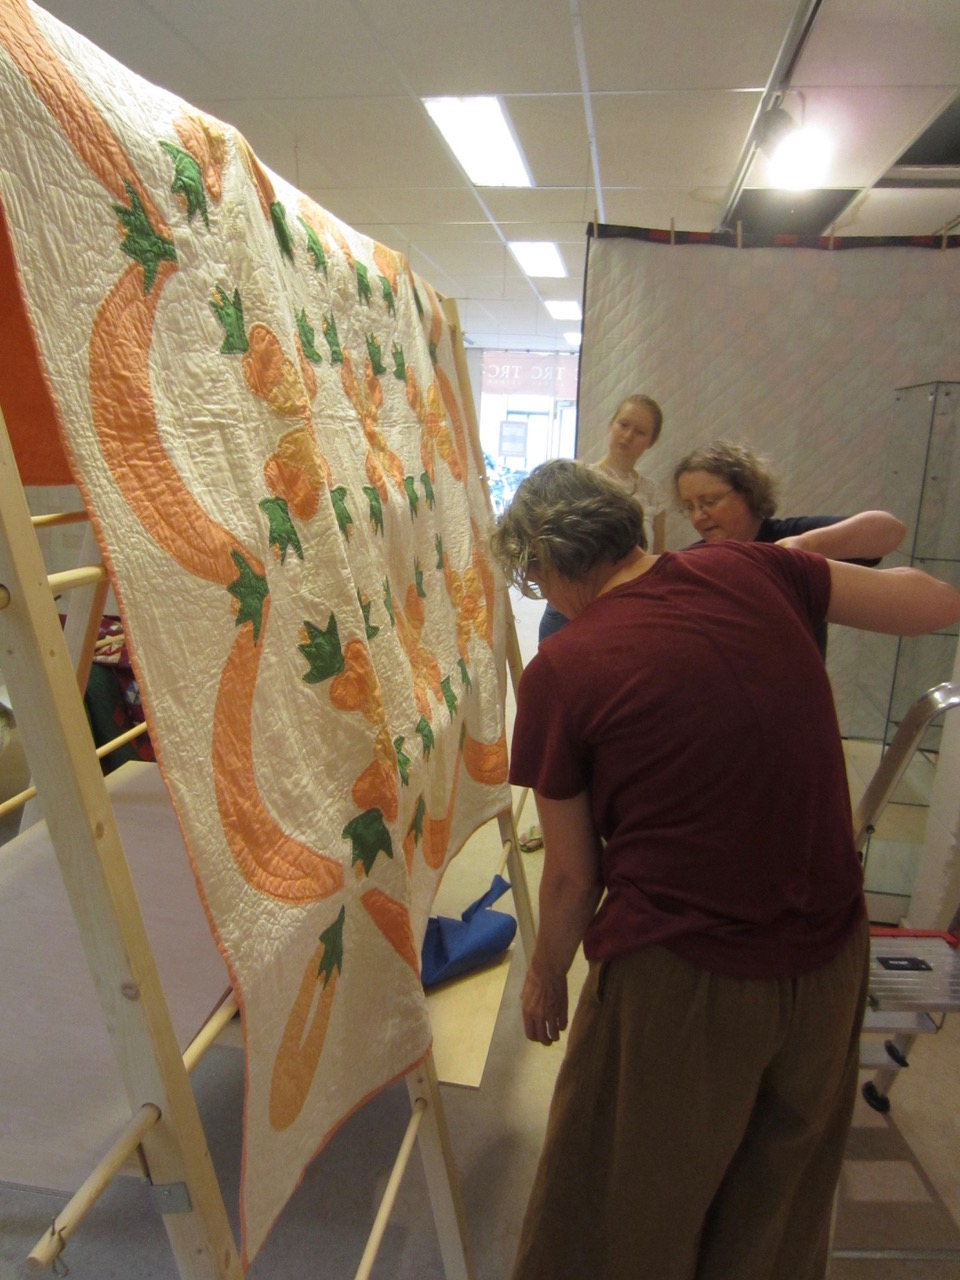 Setting up the quilt exhibition